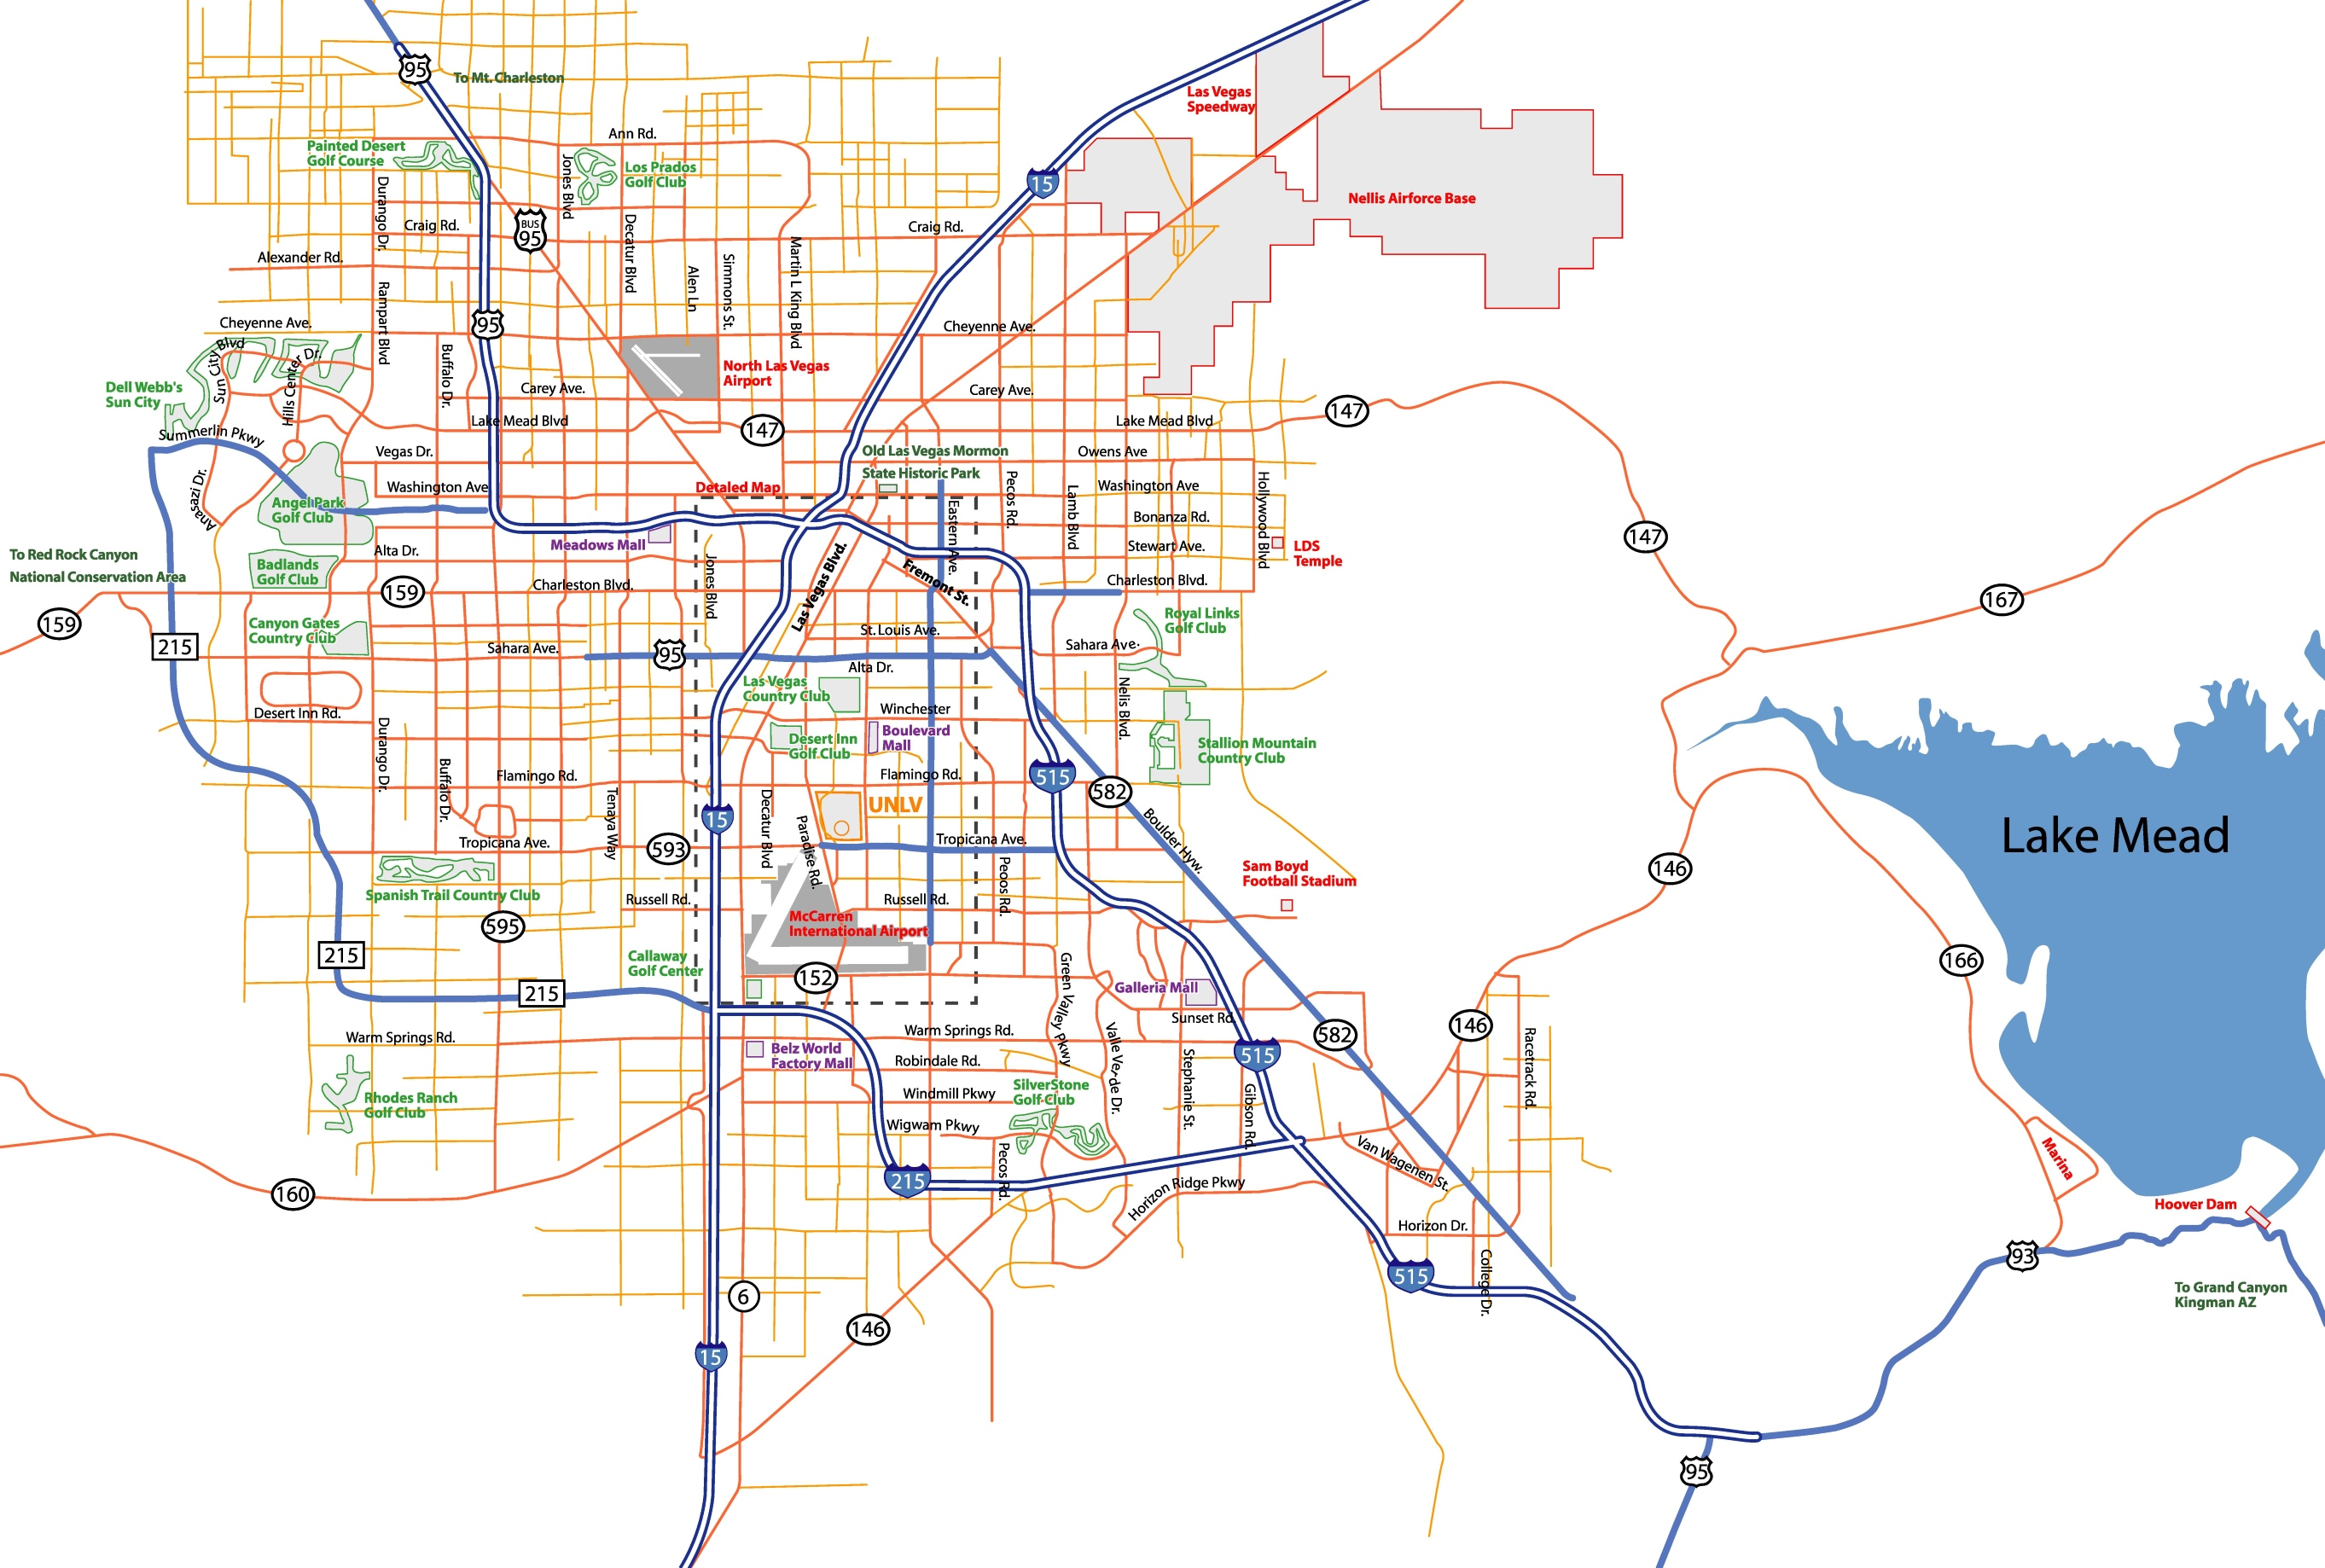 Las Vegas Street Map - Washington dc on the us map